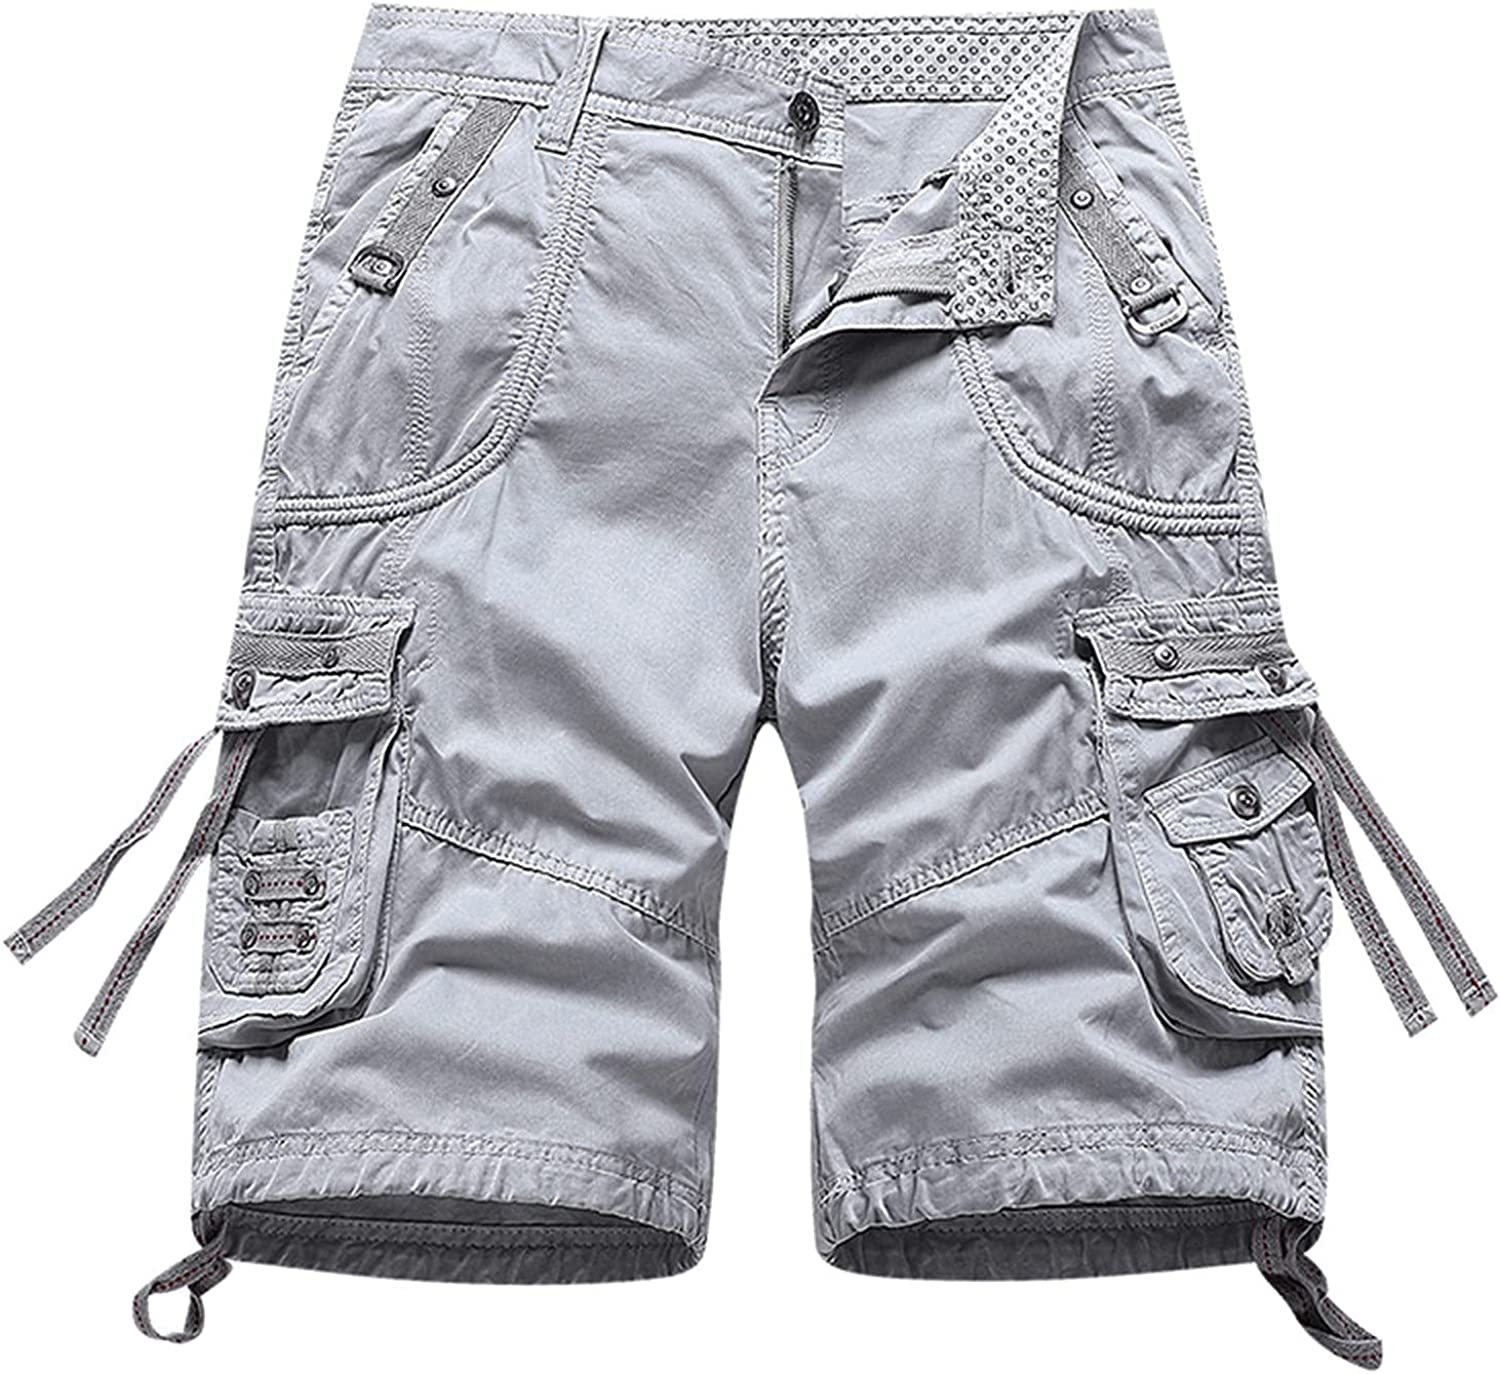 Shorts for Men Drawstring Solid Pocket Knee Shorts Casual Plus Size Tooling Sports Shorts Summer Casual Baggy Trousers